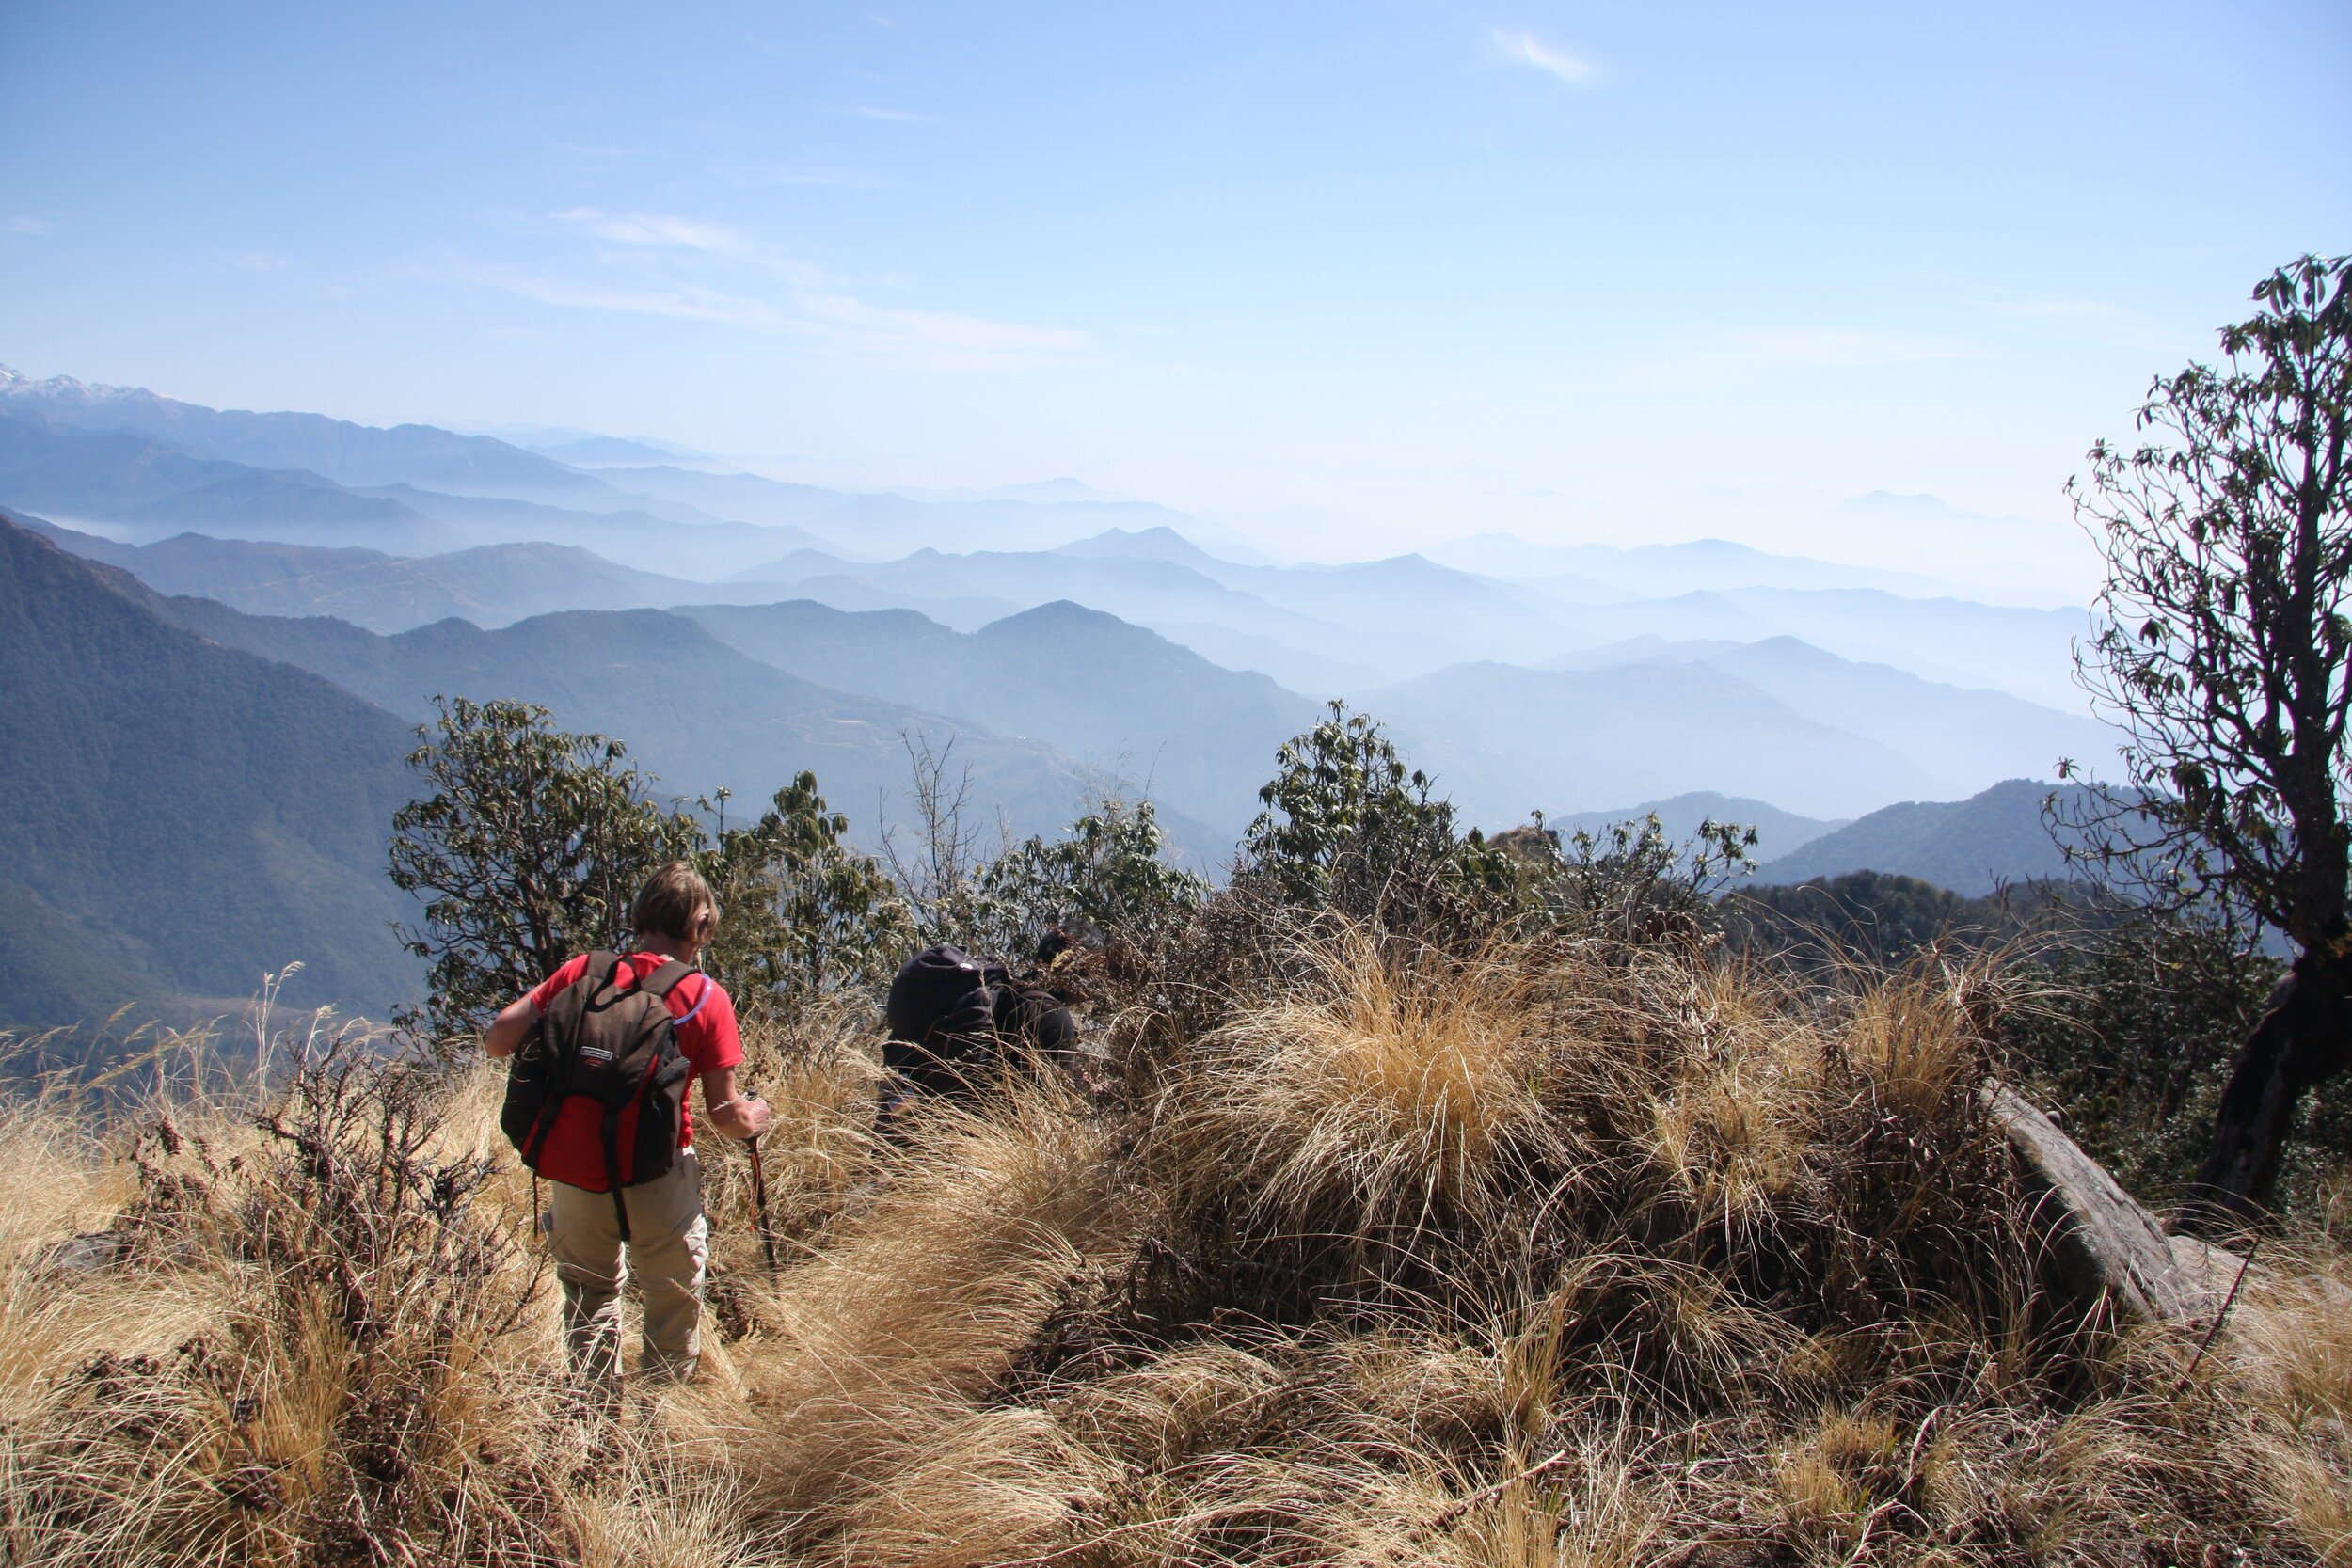 February 2018 - I found the trek inspiring, fun and totally enjoyable. Thanks again for giving me such a memorable time in Nepal.Rachel